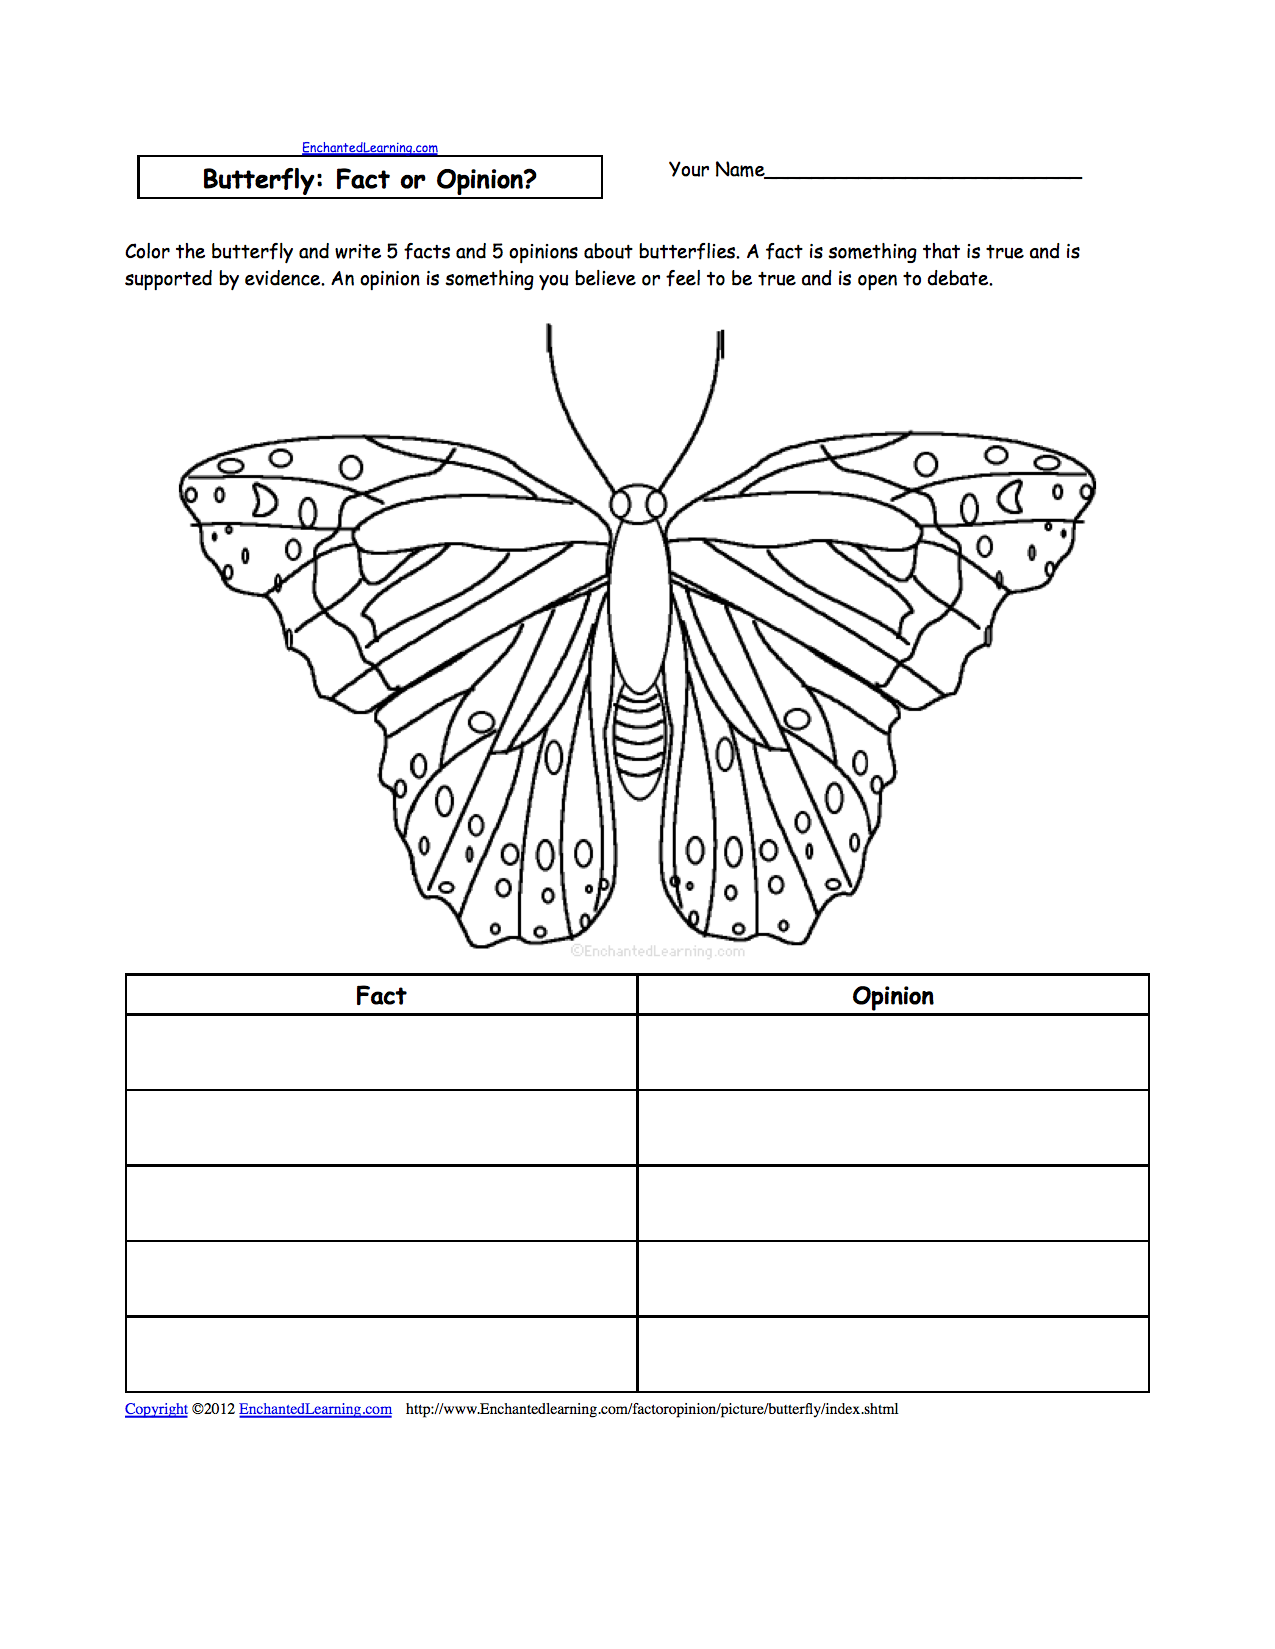 insects at enchantedlearning.com - Rainforest Insects Coloring Pages